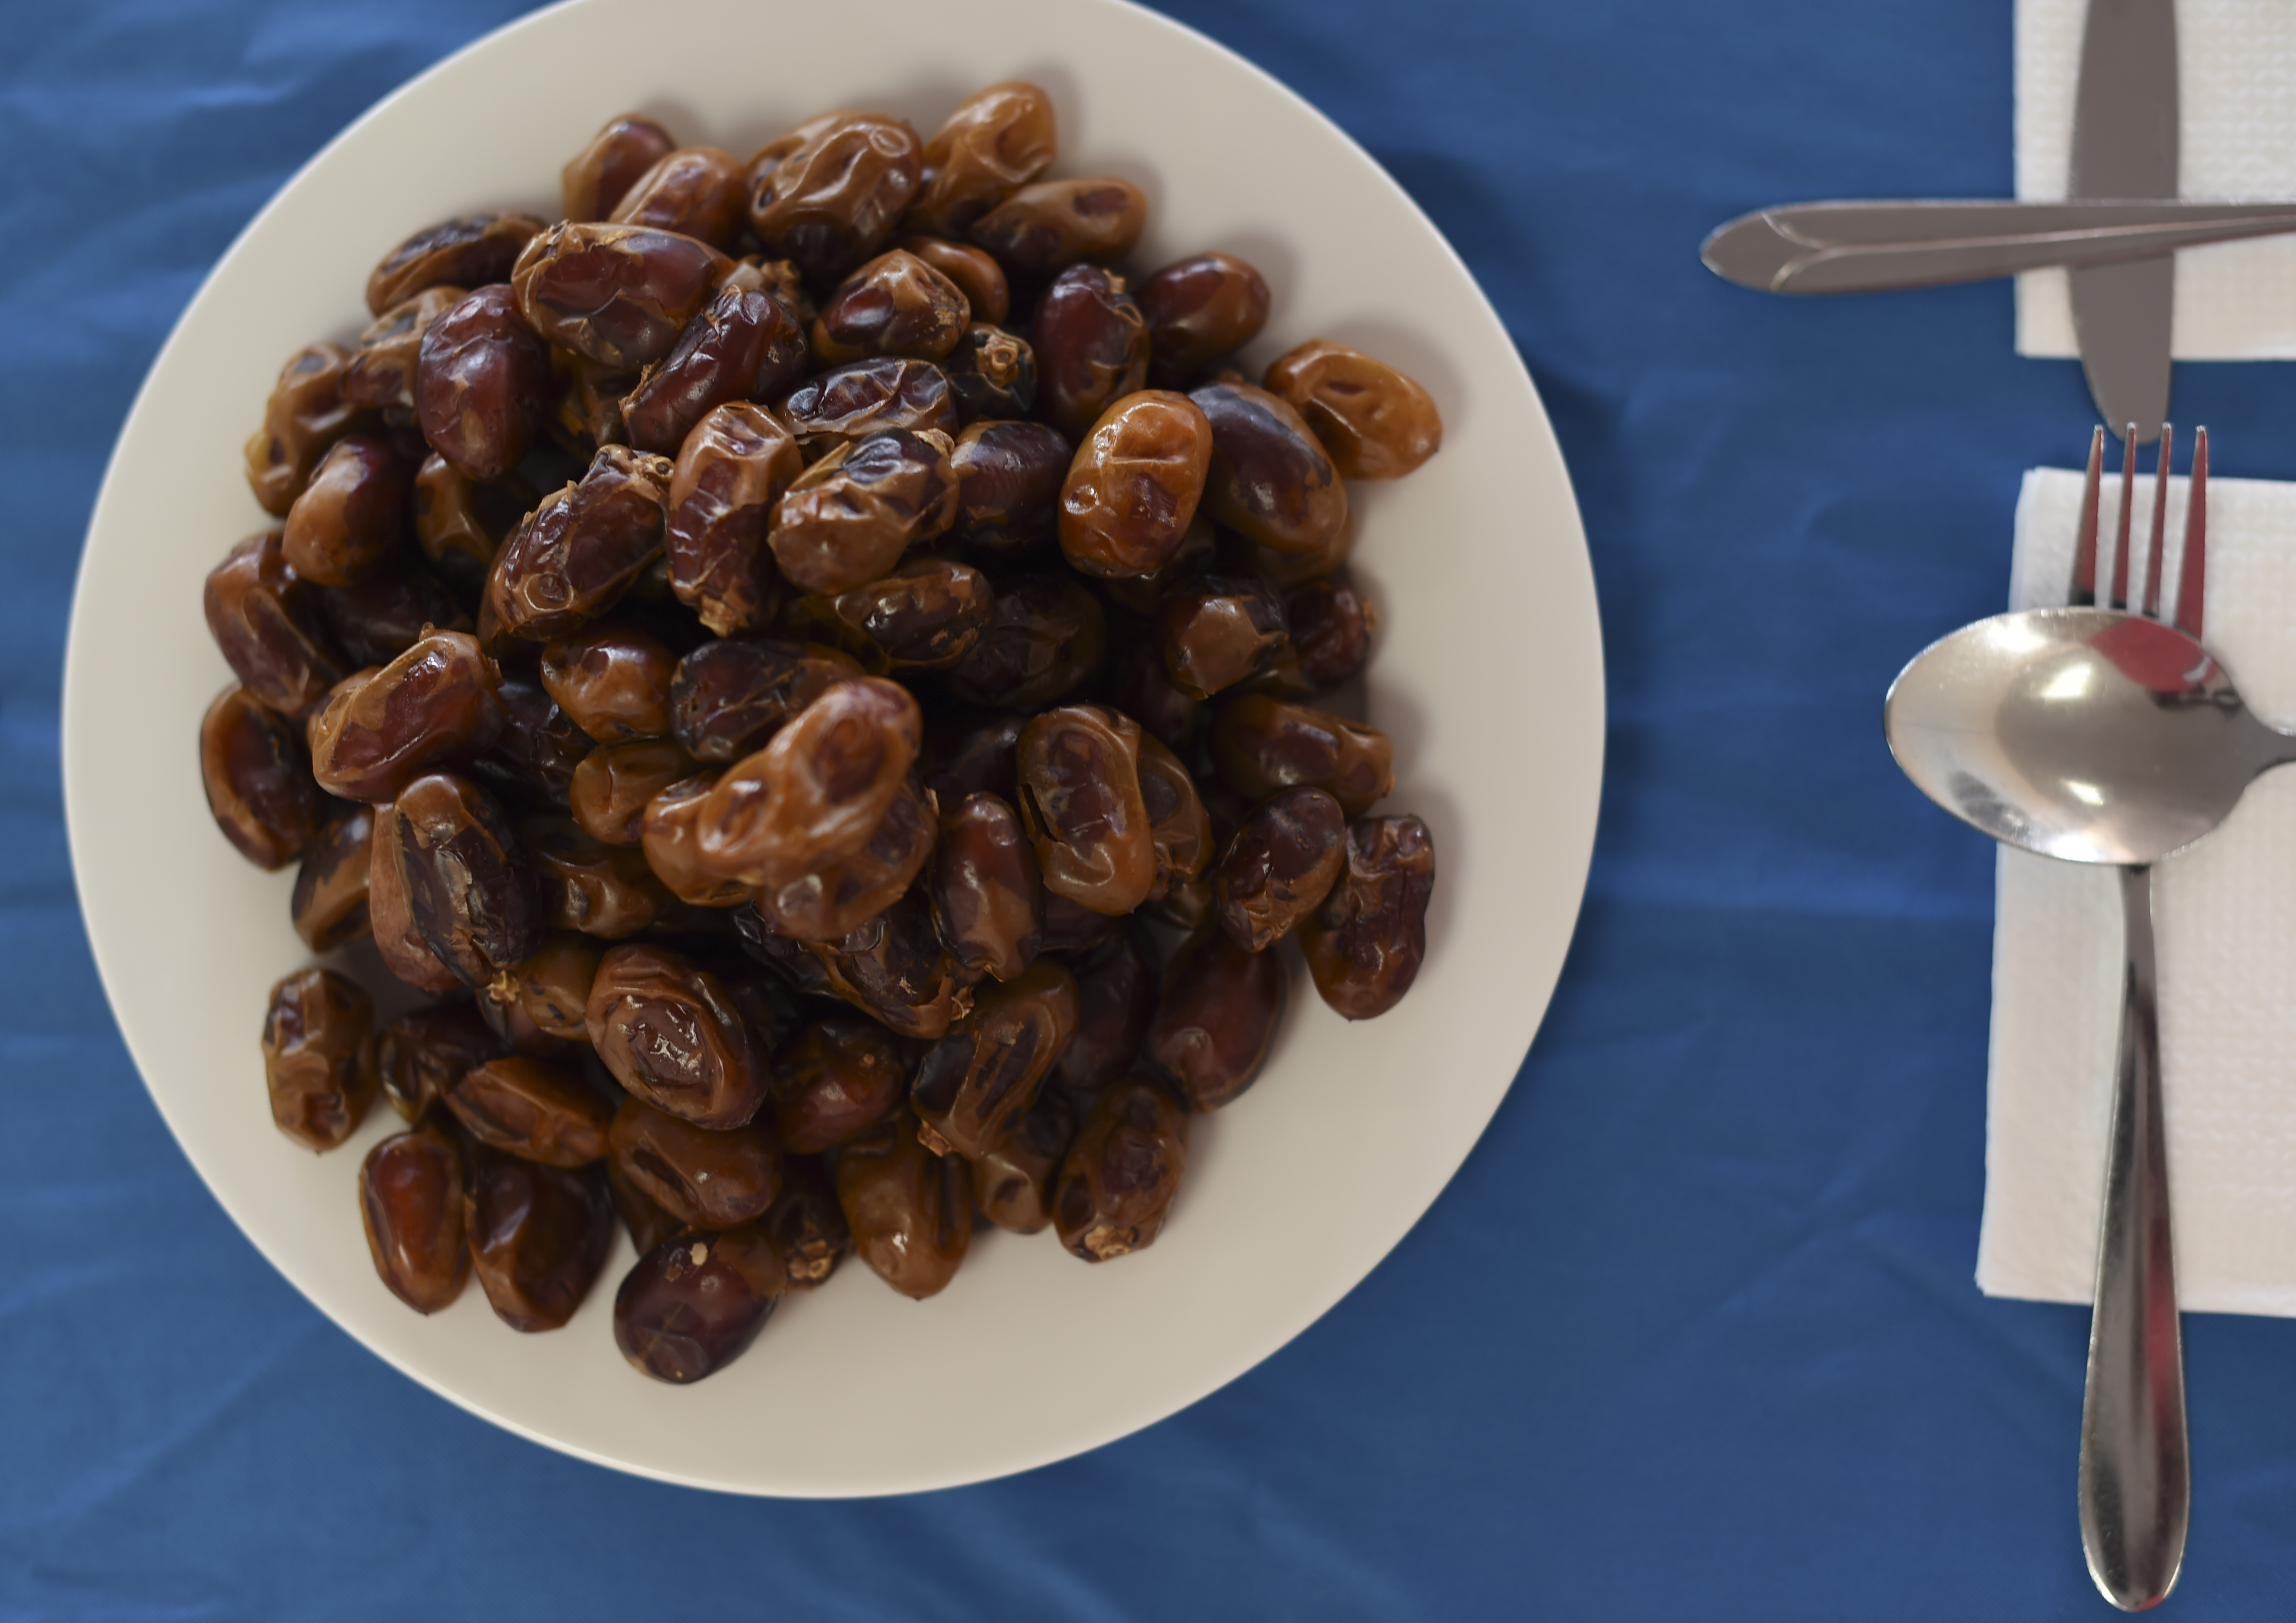 A plate of dates rests on a table before an Iftar held in Mogadishu, Somalia, June 5, 2017. During Ramadan, Muslims abstain from food and drink, including water from dawn till dusk. After sunset, eating dates and drinking water traditionally breaks the fast. (U.S. Air Force Photo by Staff Sgt. Eboni Prince)